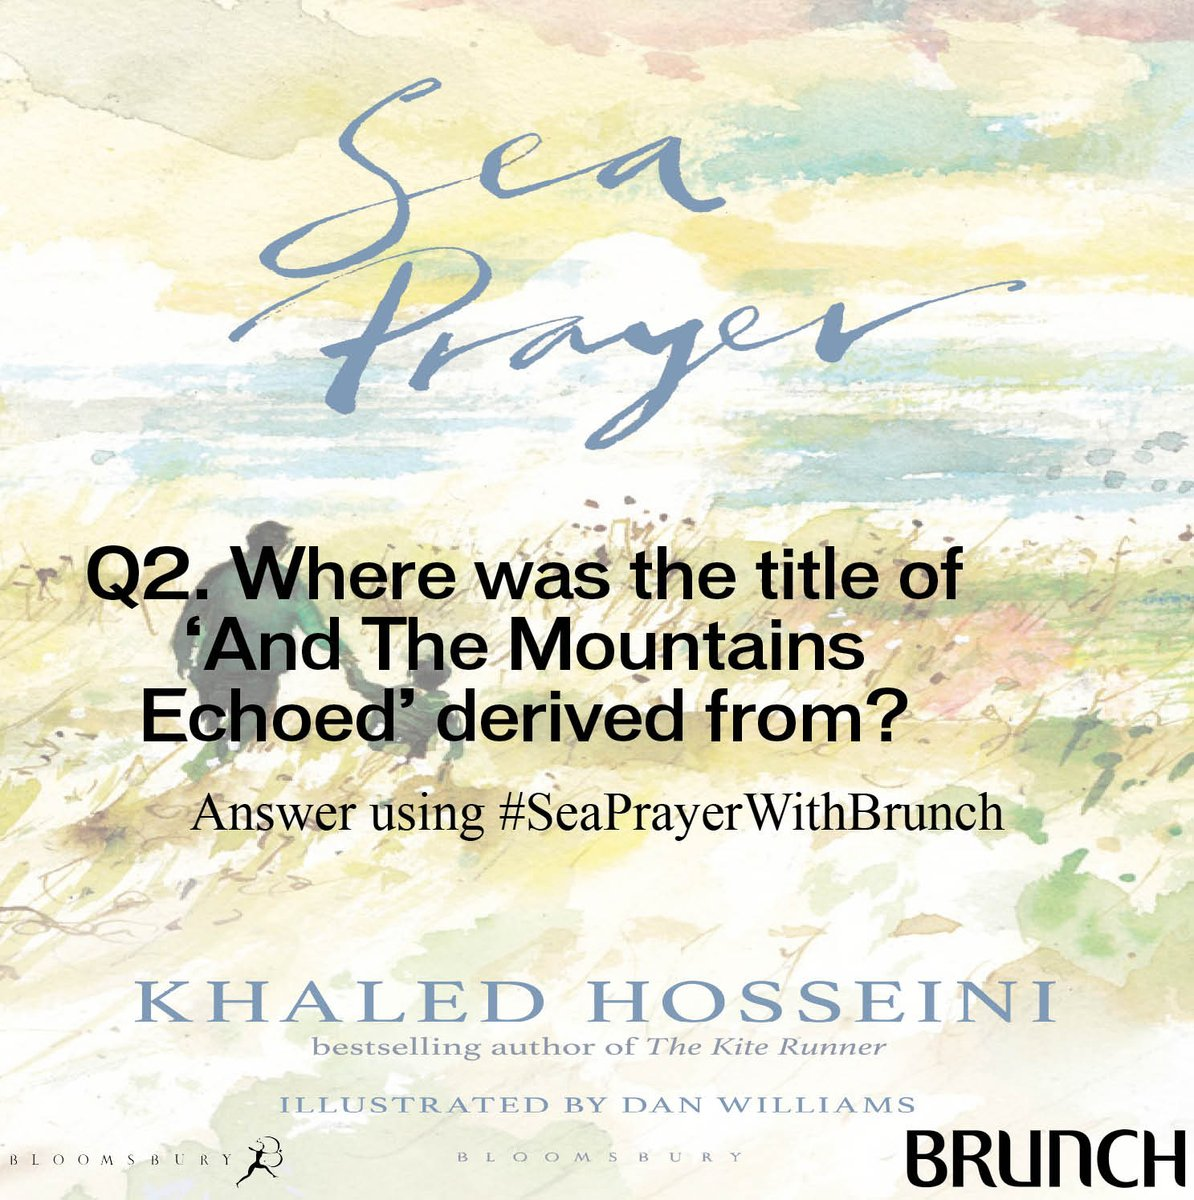 Here's the second Q of the #SeaPrayerWithBrunch contest. Tag, follow, win! @BloomsburyIndia https://t.co/VBC4mVD1SQ